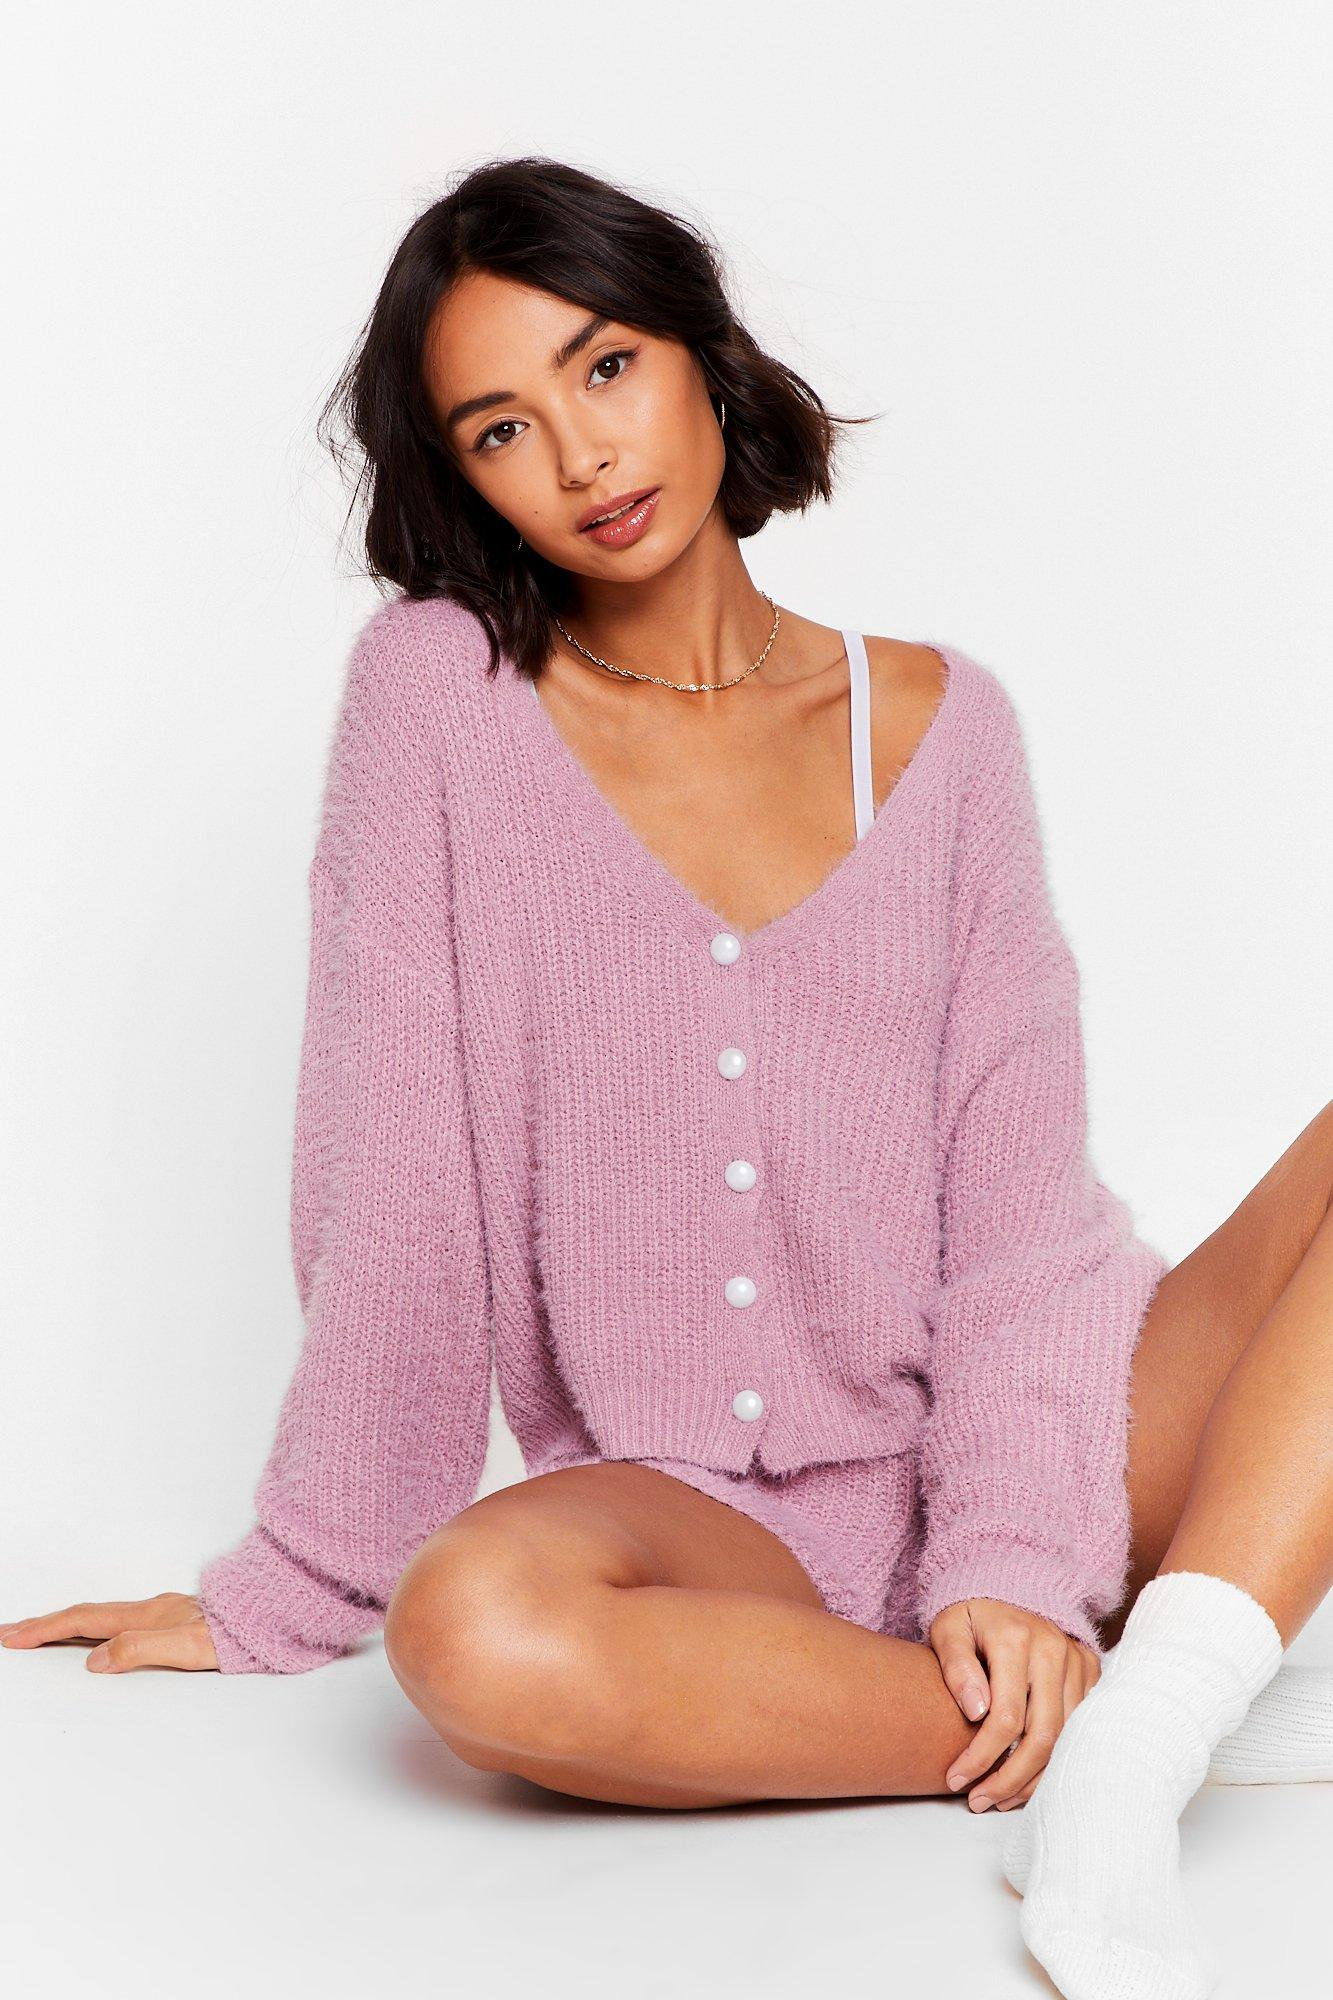 Image of What a Pearl Wants Knit Shorts Lounge Set